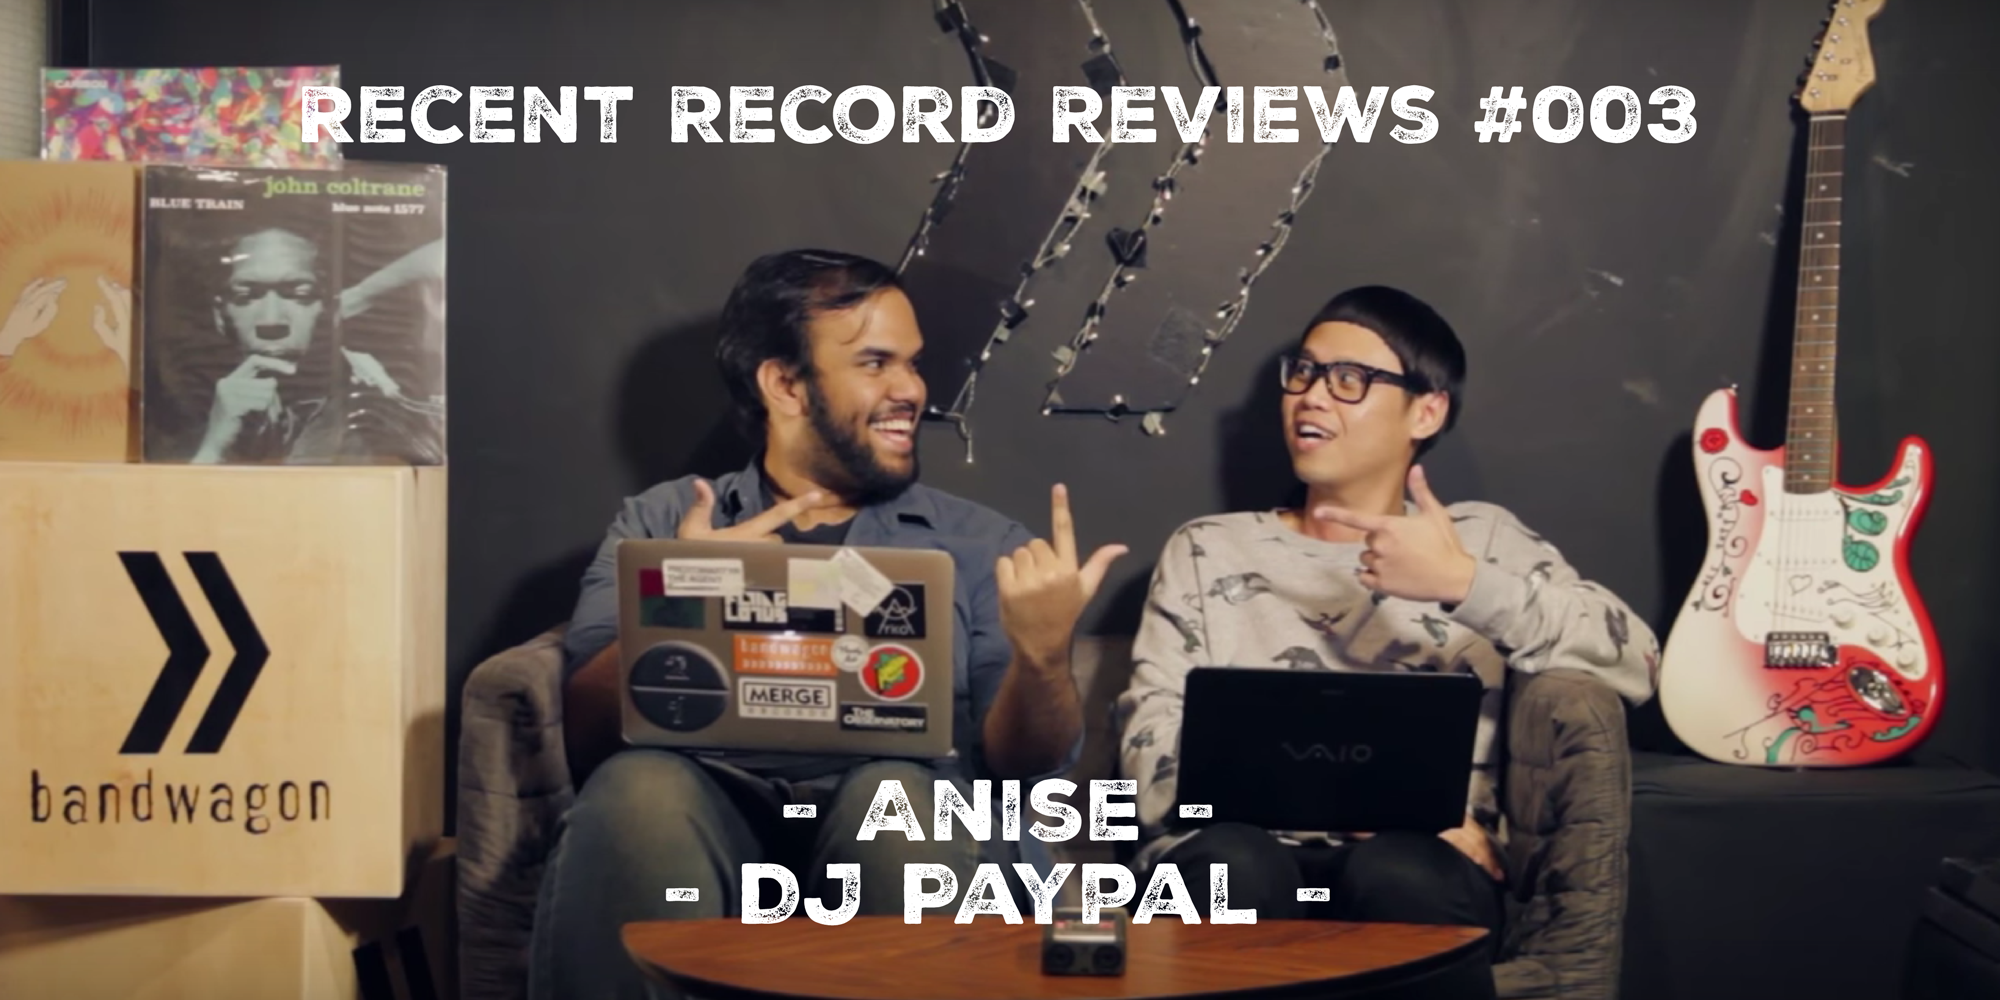 WATCH: Bandwagon Recent Record Reviews #003 - Anise, DJ Paypal